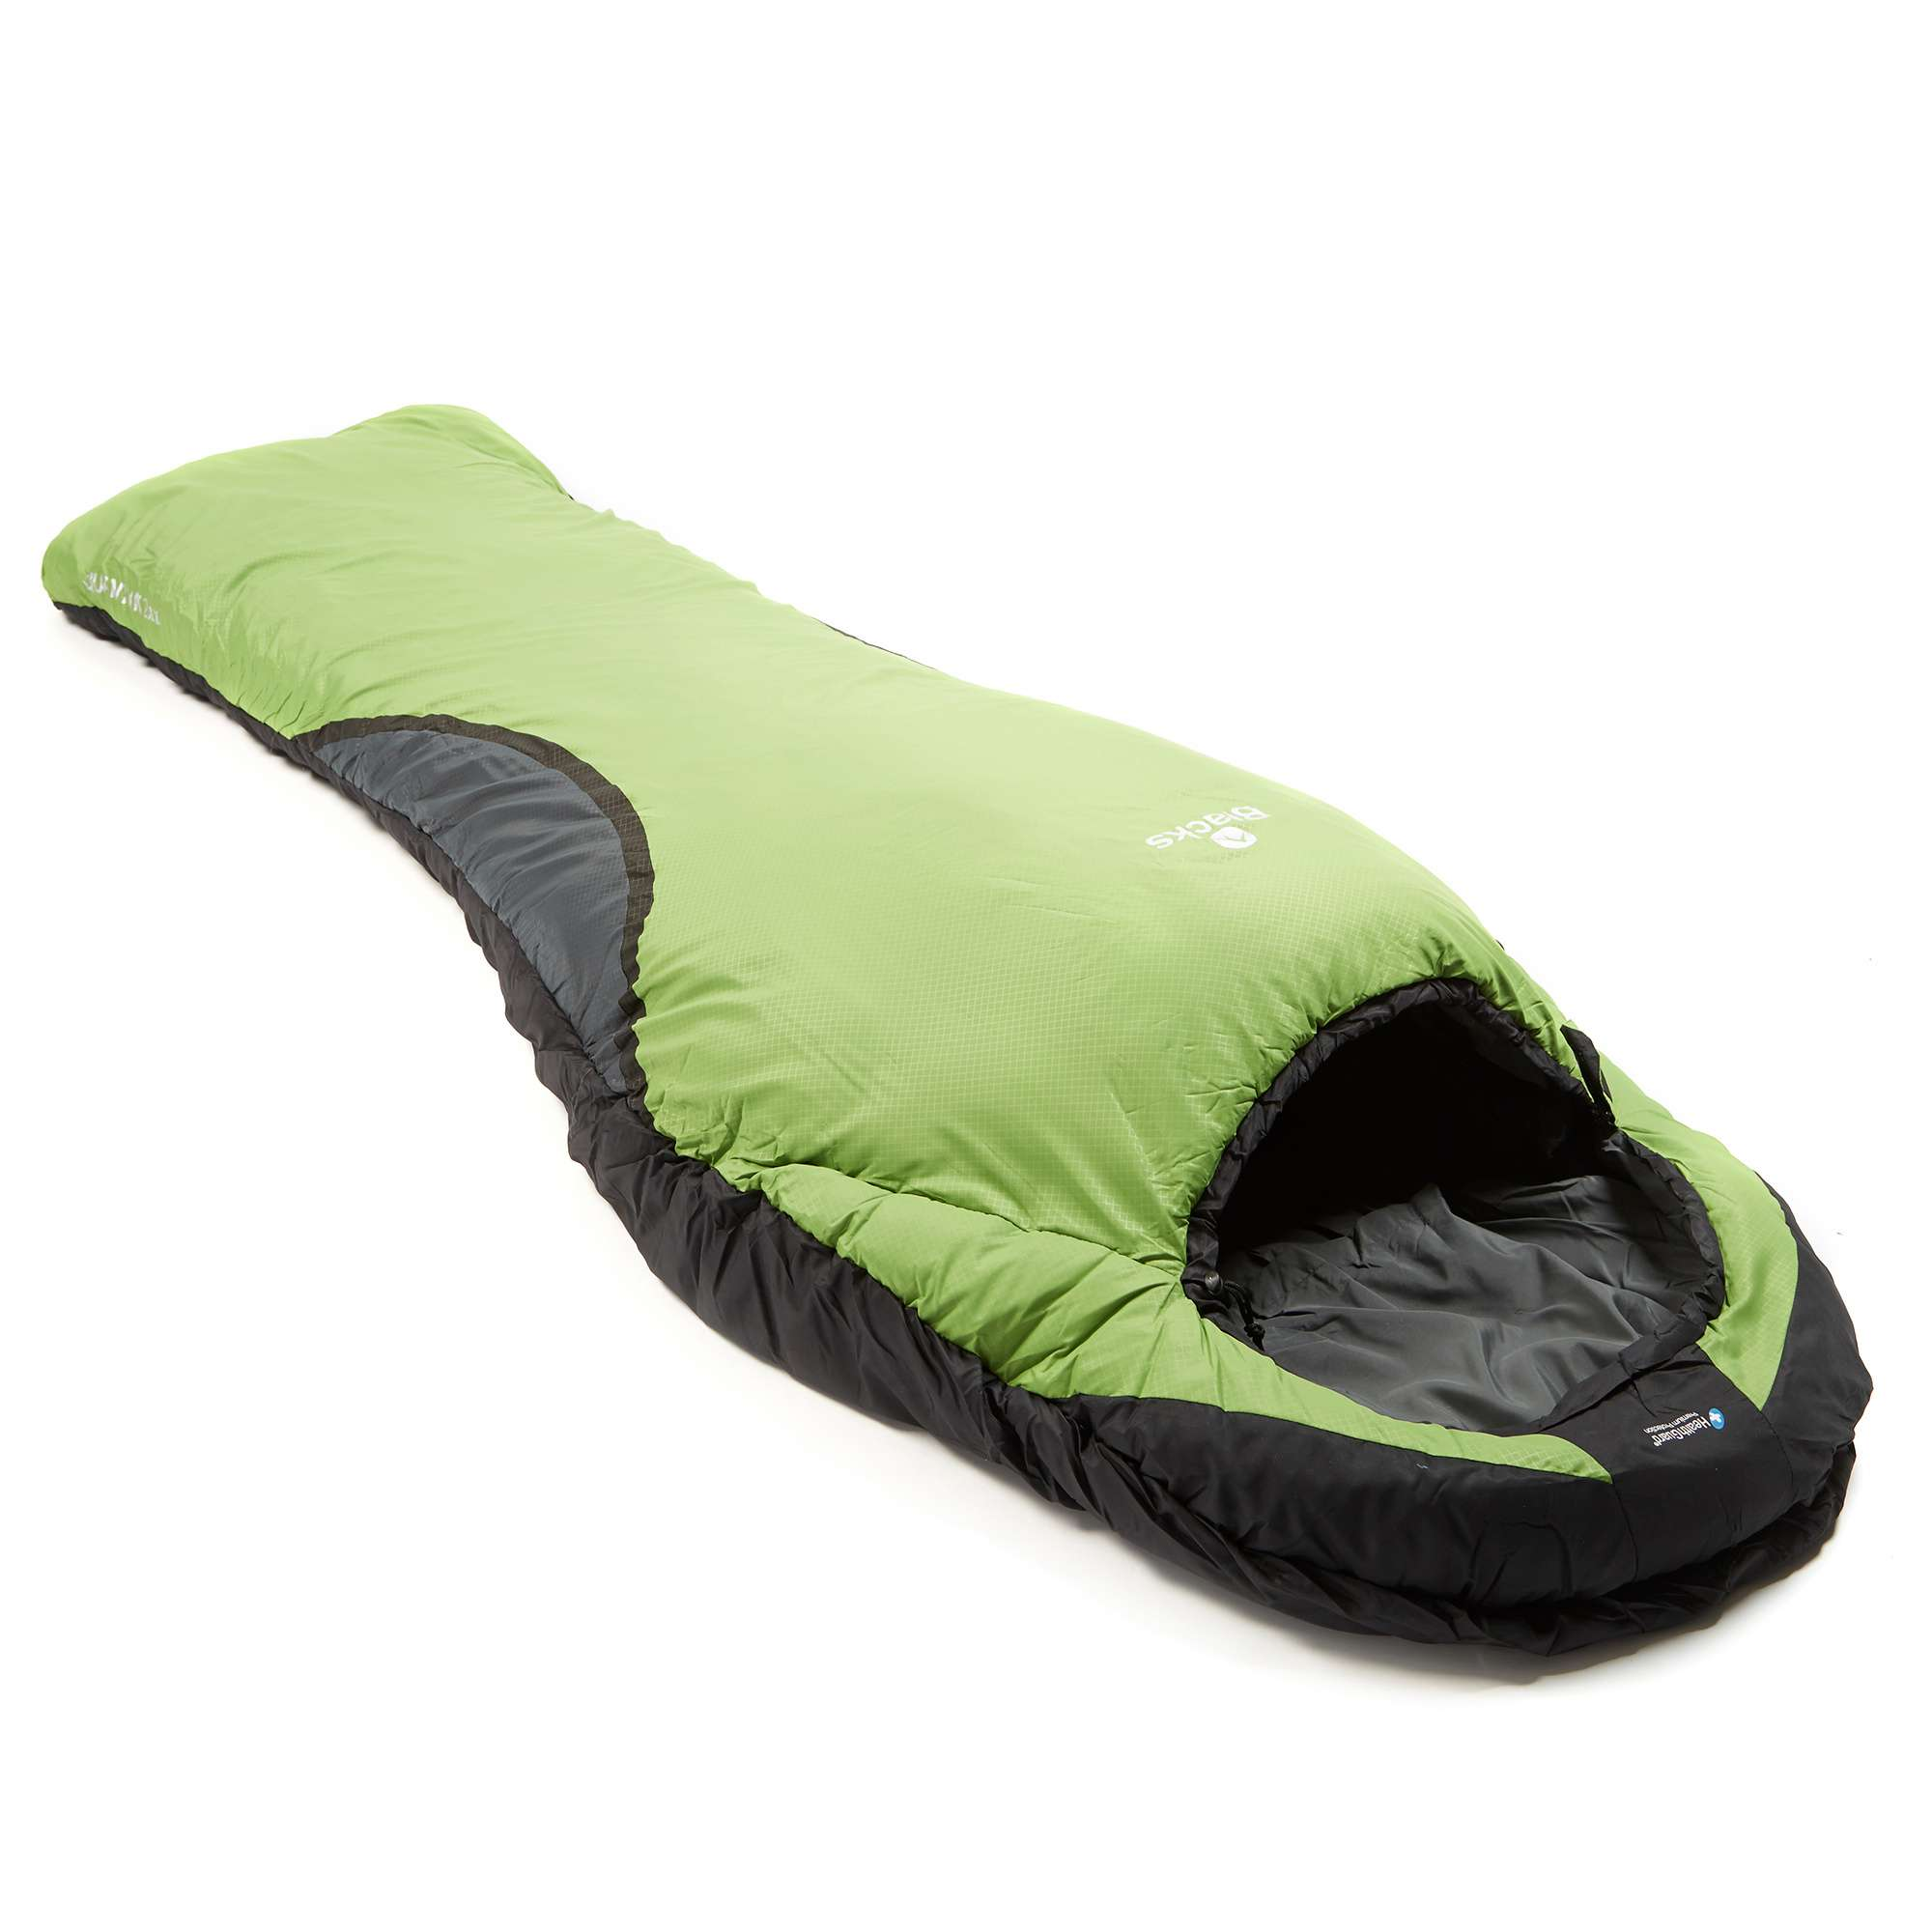 BLACKS Quantum 200 2-Season Sleeping Bag - XXL